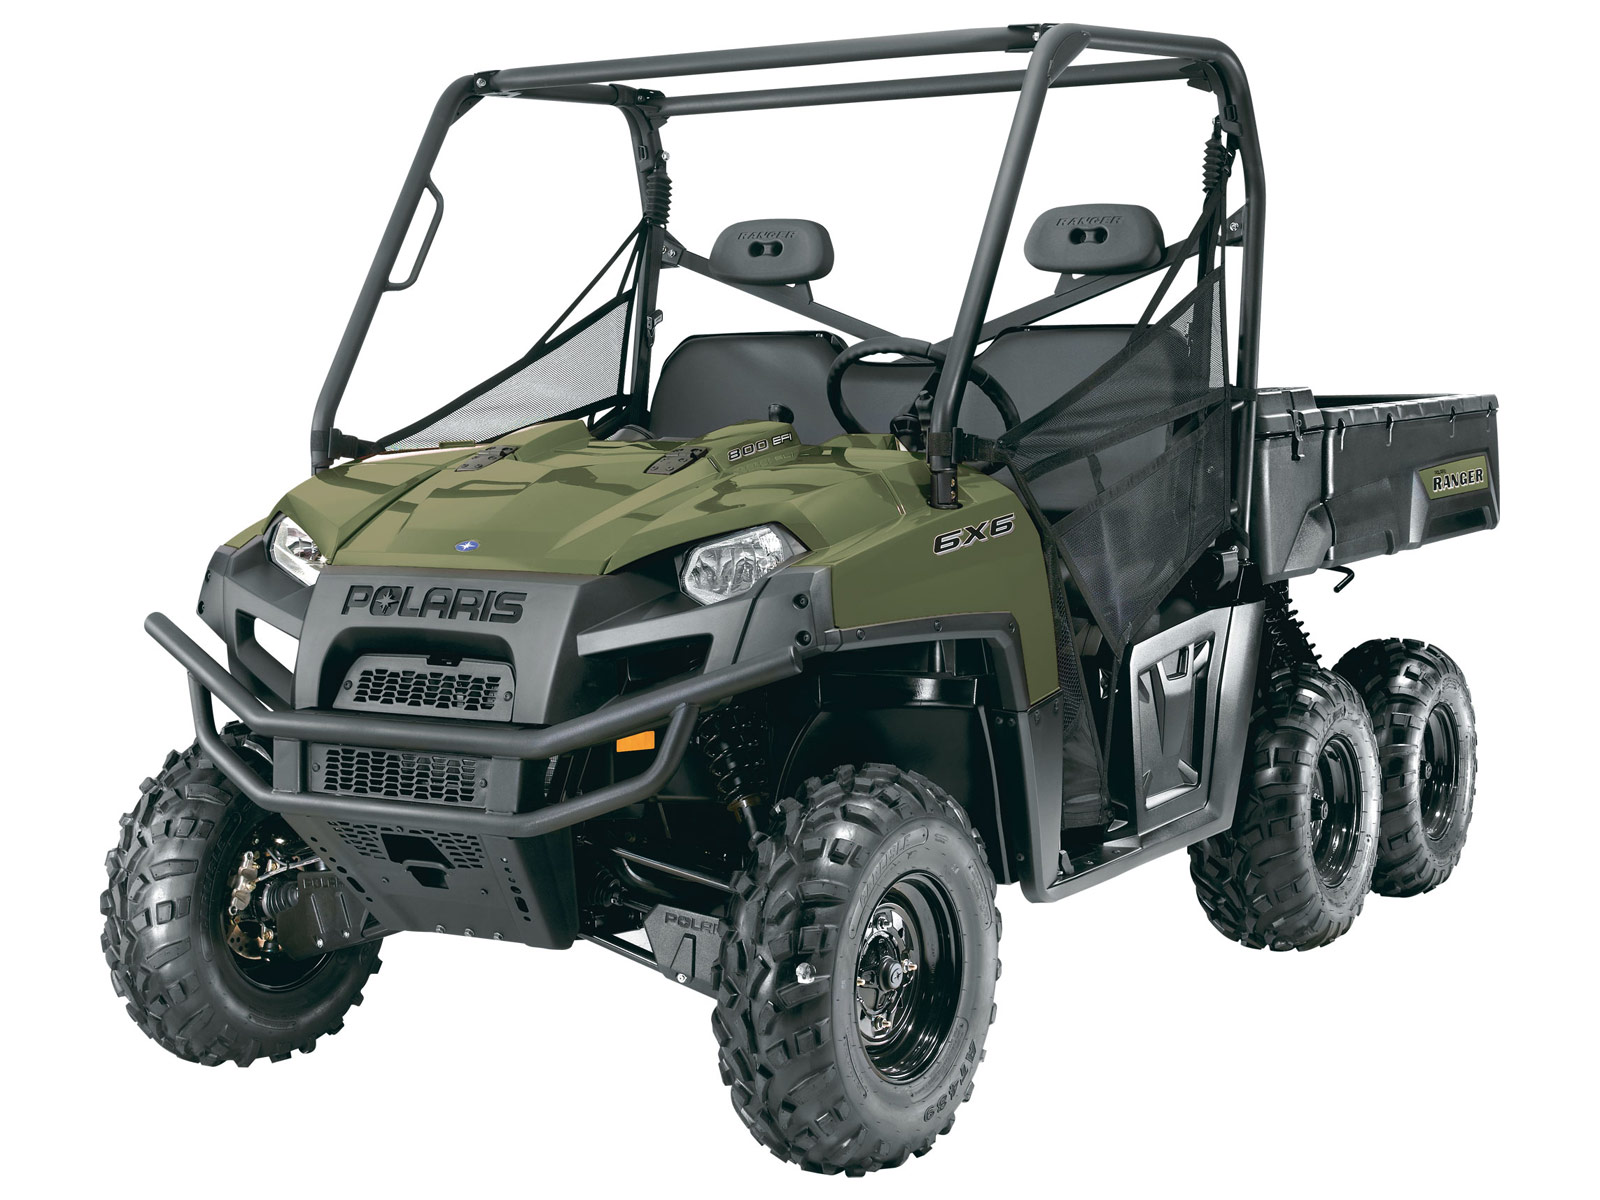 Polaris ranger photo - 7